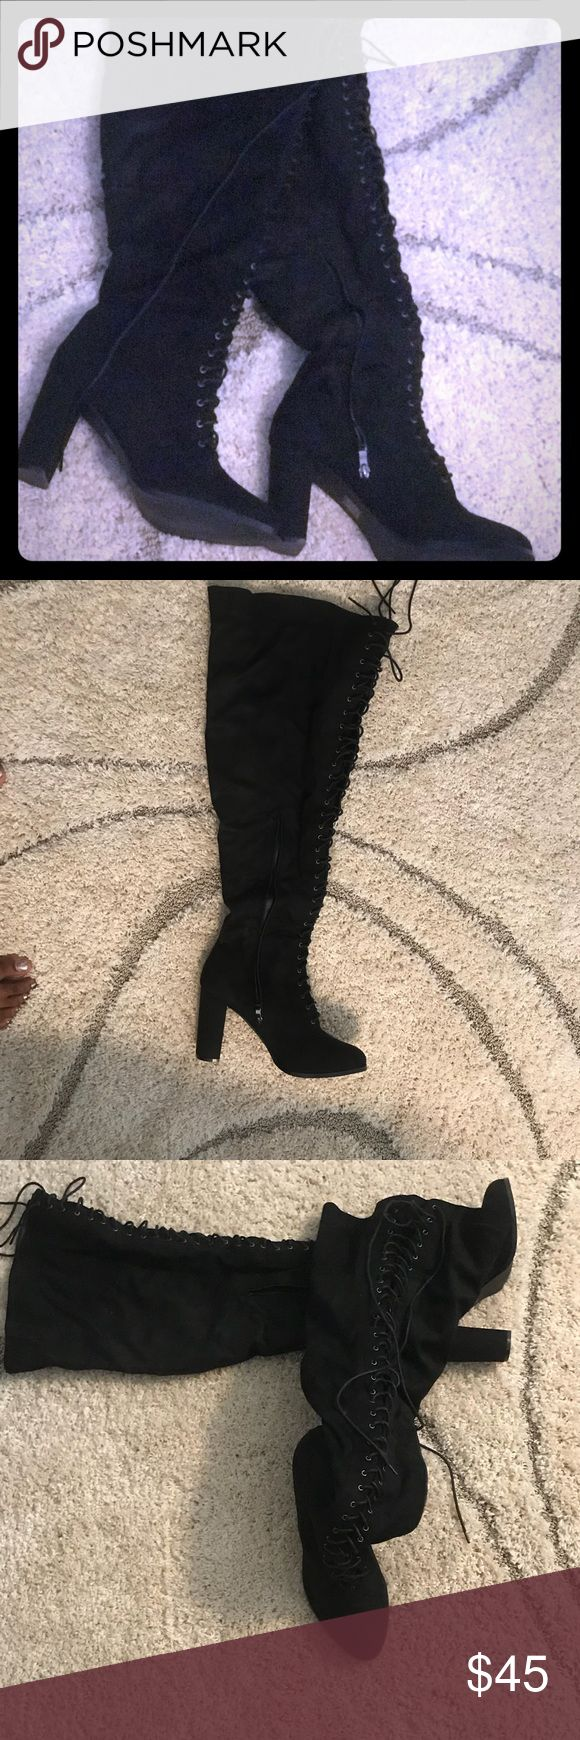 Thigh high lace up boots Thigh high lace up boots size 12 Wide true to size brand new SUEDE MATERIAL 3-4. Inches heel Shoes Over the Knee Boots